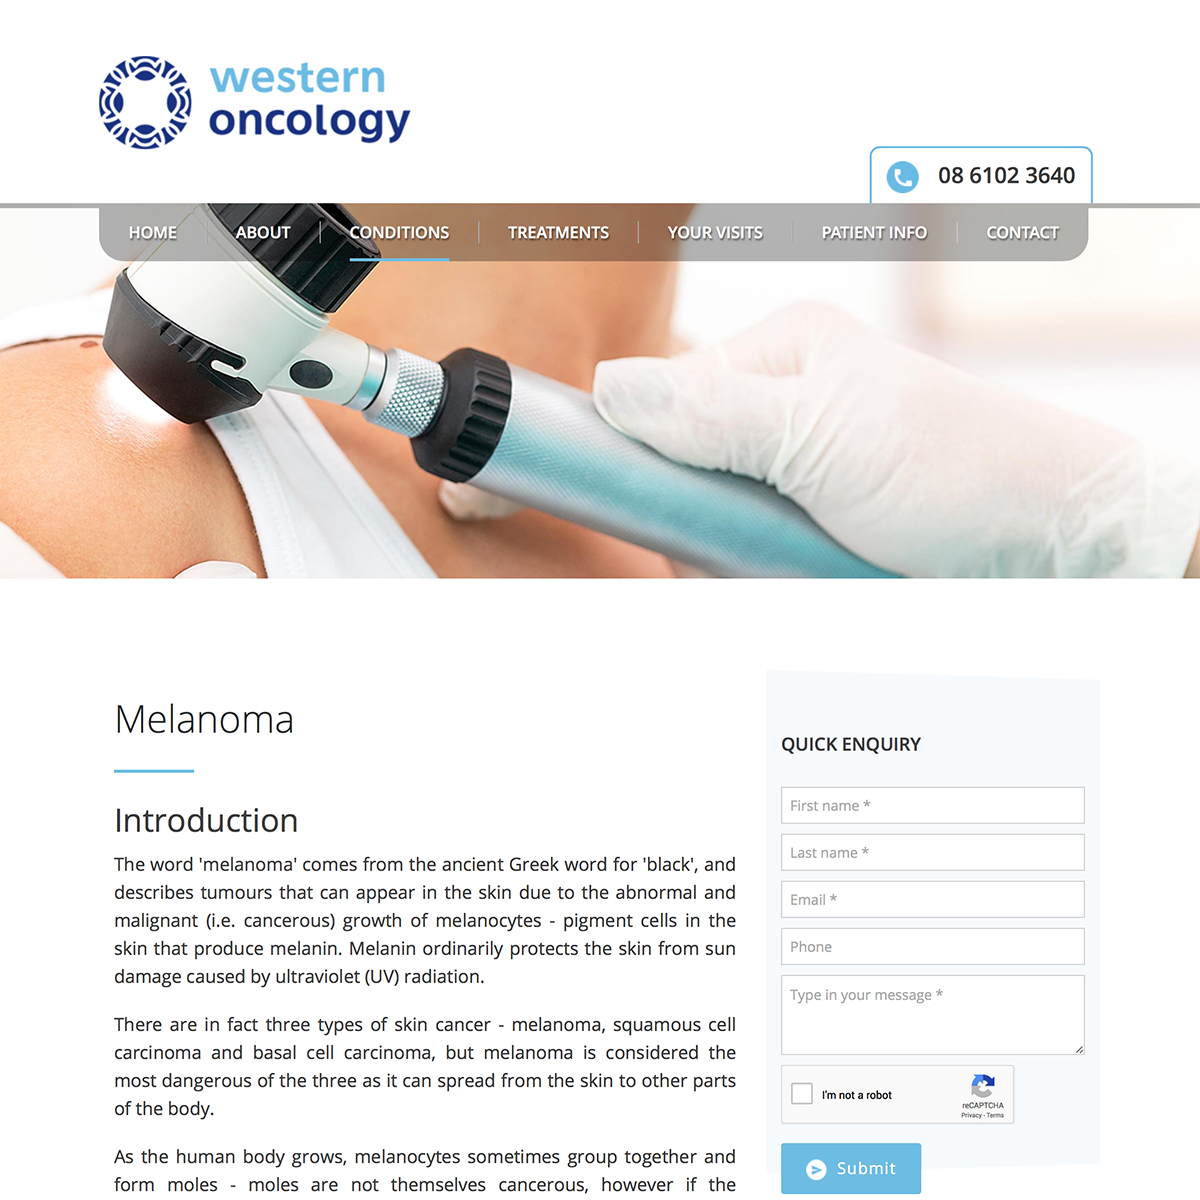 Western Oncology - Melanoma